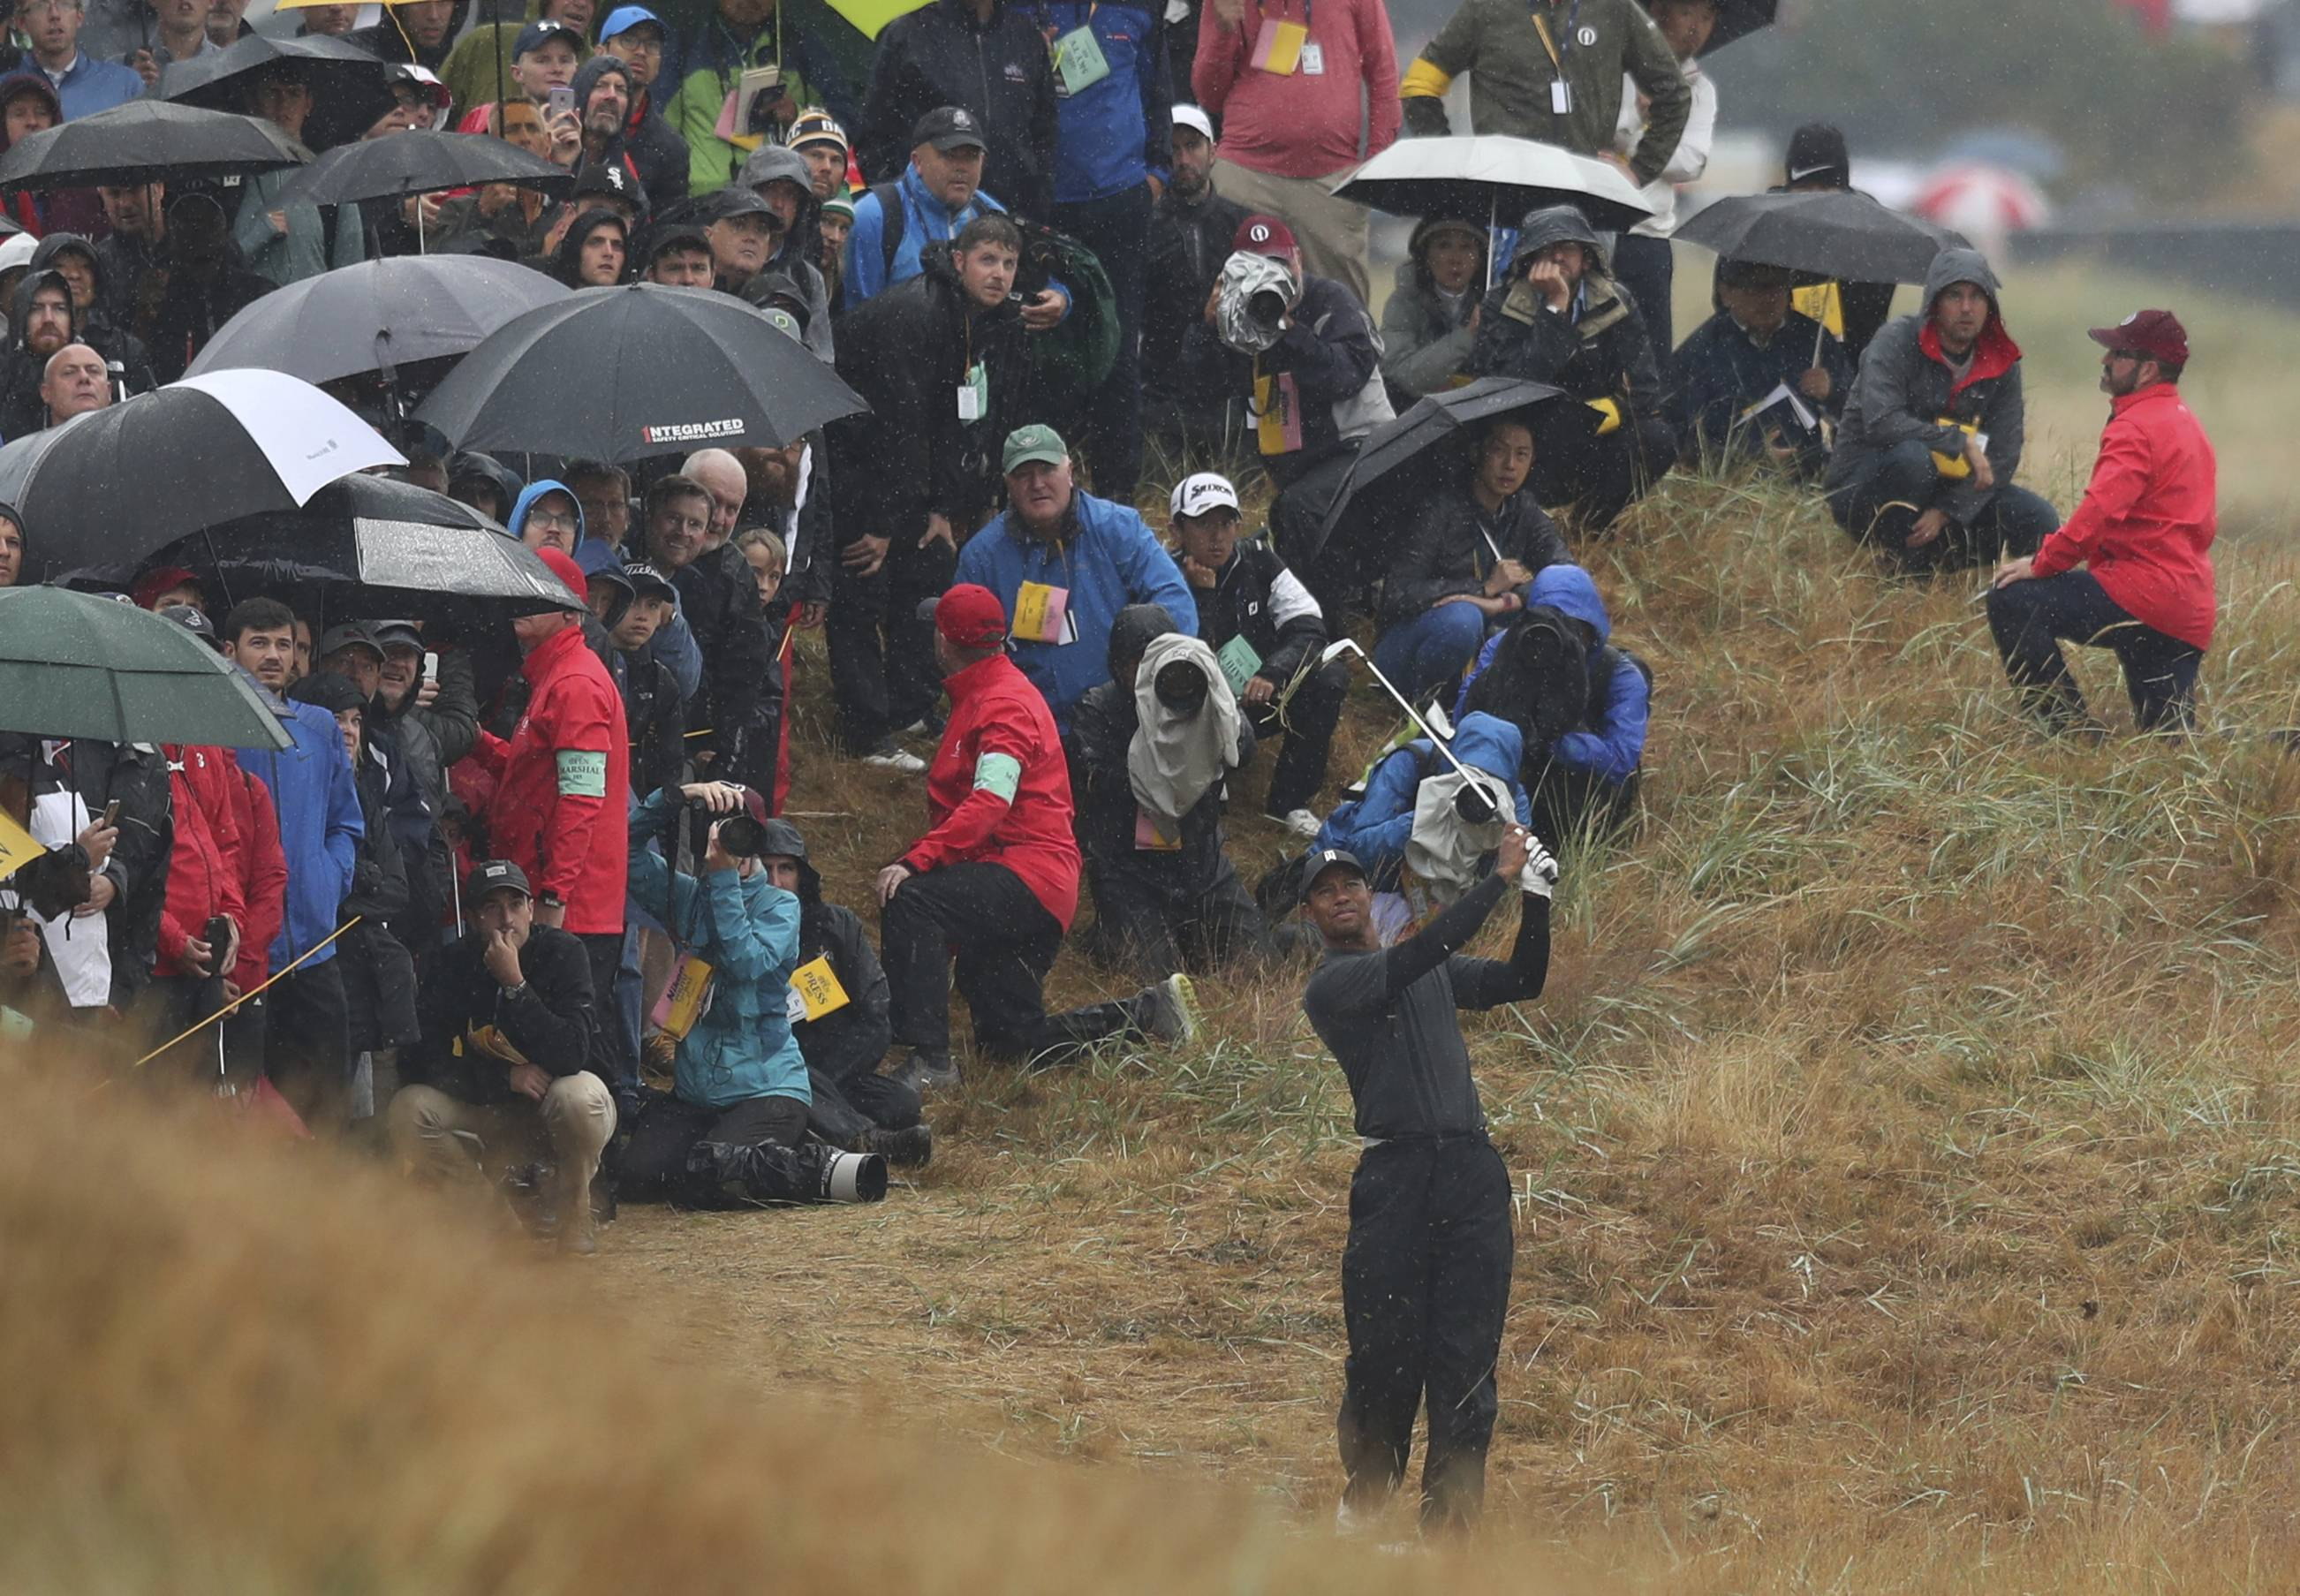 Tiger Woods plays out of the rough on the second hole Friday during the second round of the British Open Golf Championship in Carnoustie, Scotland.